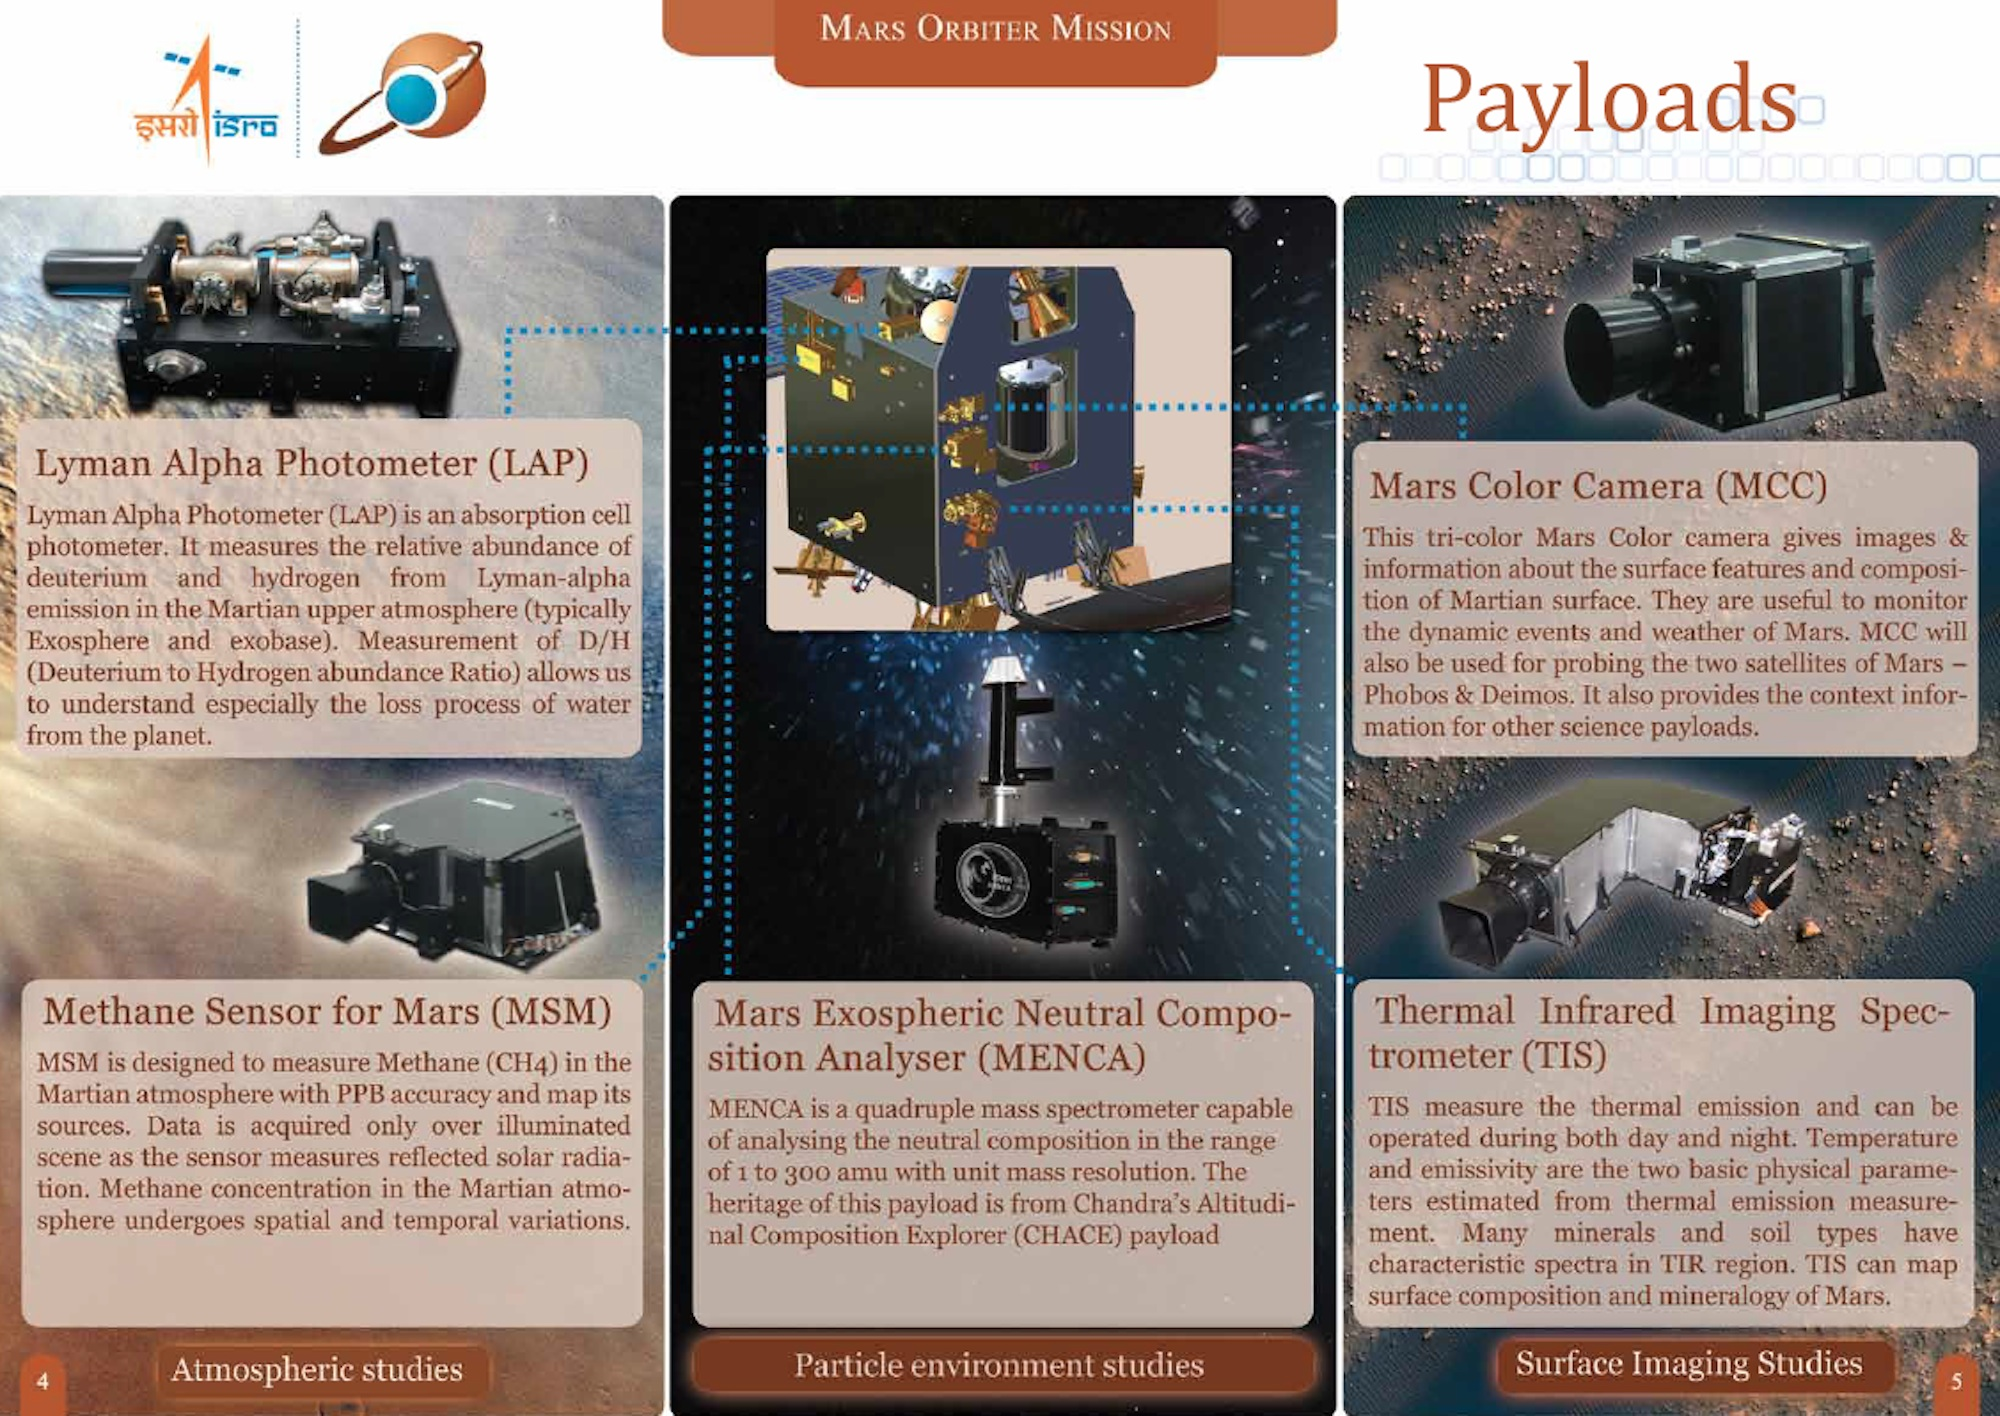 Mars Orbiter Mission Payloads (Infographic)